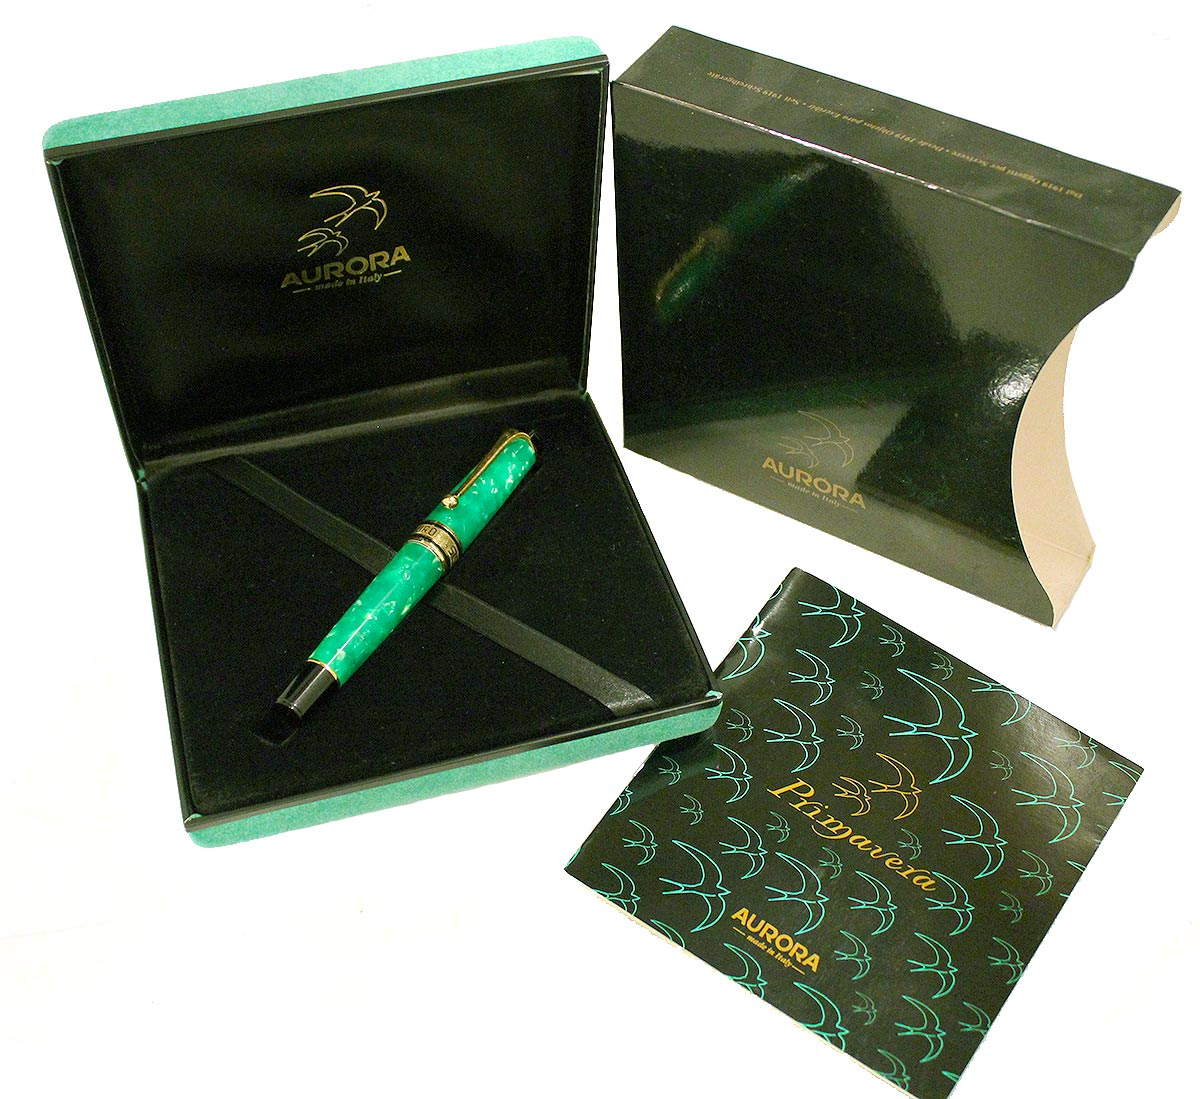 JADE AURORA PRIMAVERA LIMITED EDITION LIMITED EDITION ROLLERBALL PEN NEW IN BOX OFFERED BY ANTIQUE DIGGER